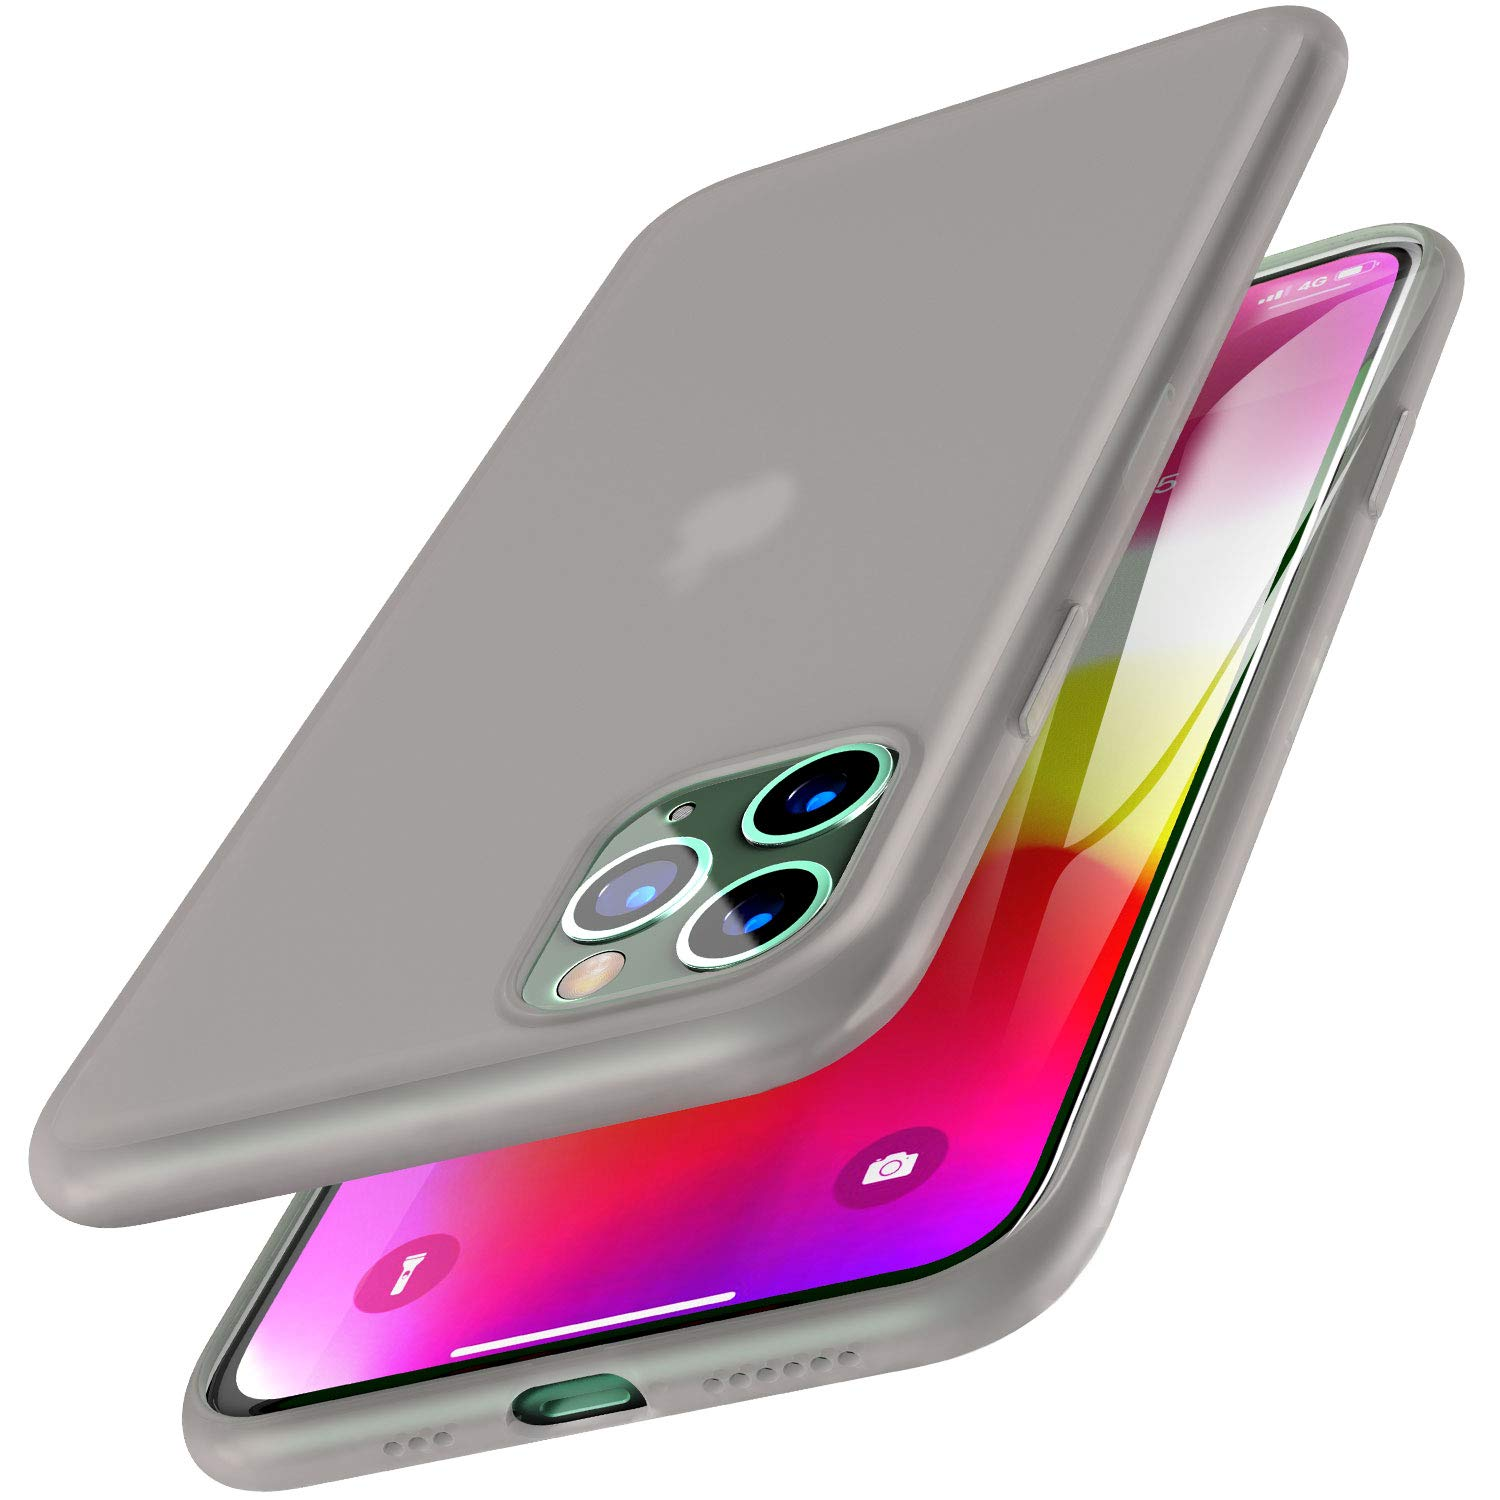 TOZO for iPhone 11 Pro Case 5.8 Inch (2019) Liquid Silicone Gel Rubber Shockproof Shell Ultra-Thin [Slim Fit] Soft 4 Side Full Protection Cover for iPhone 11 Pro (Semitransparent Black)